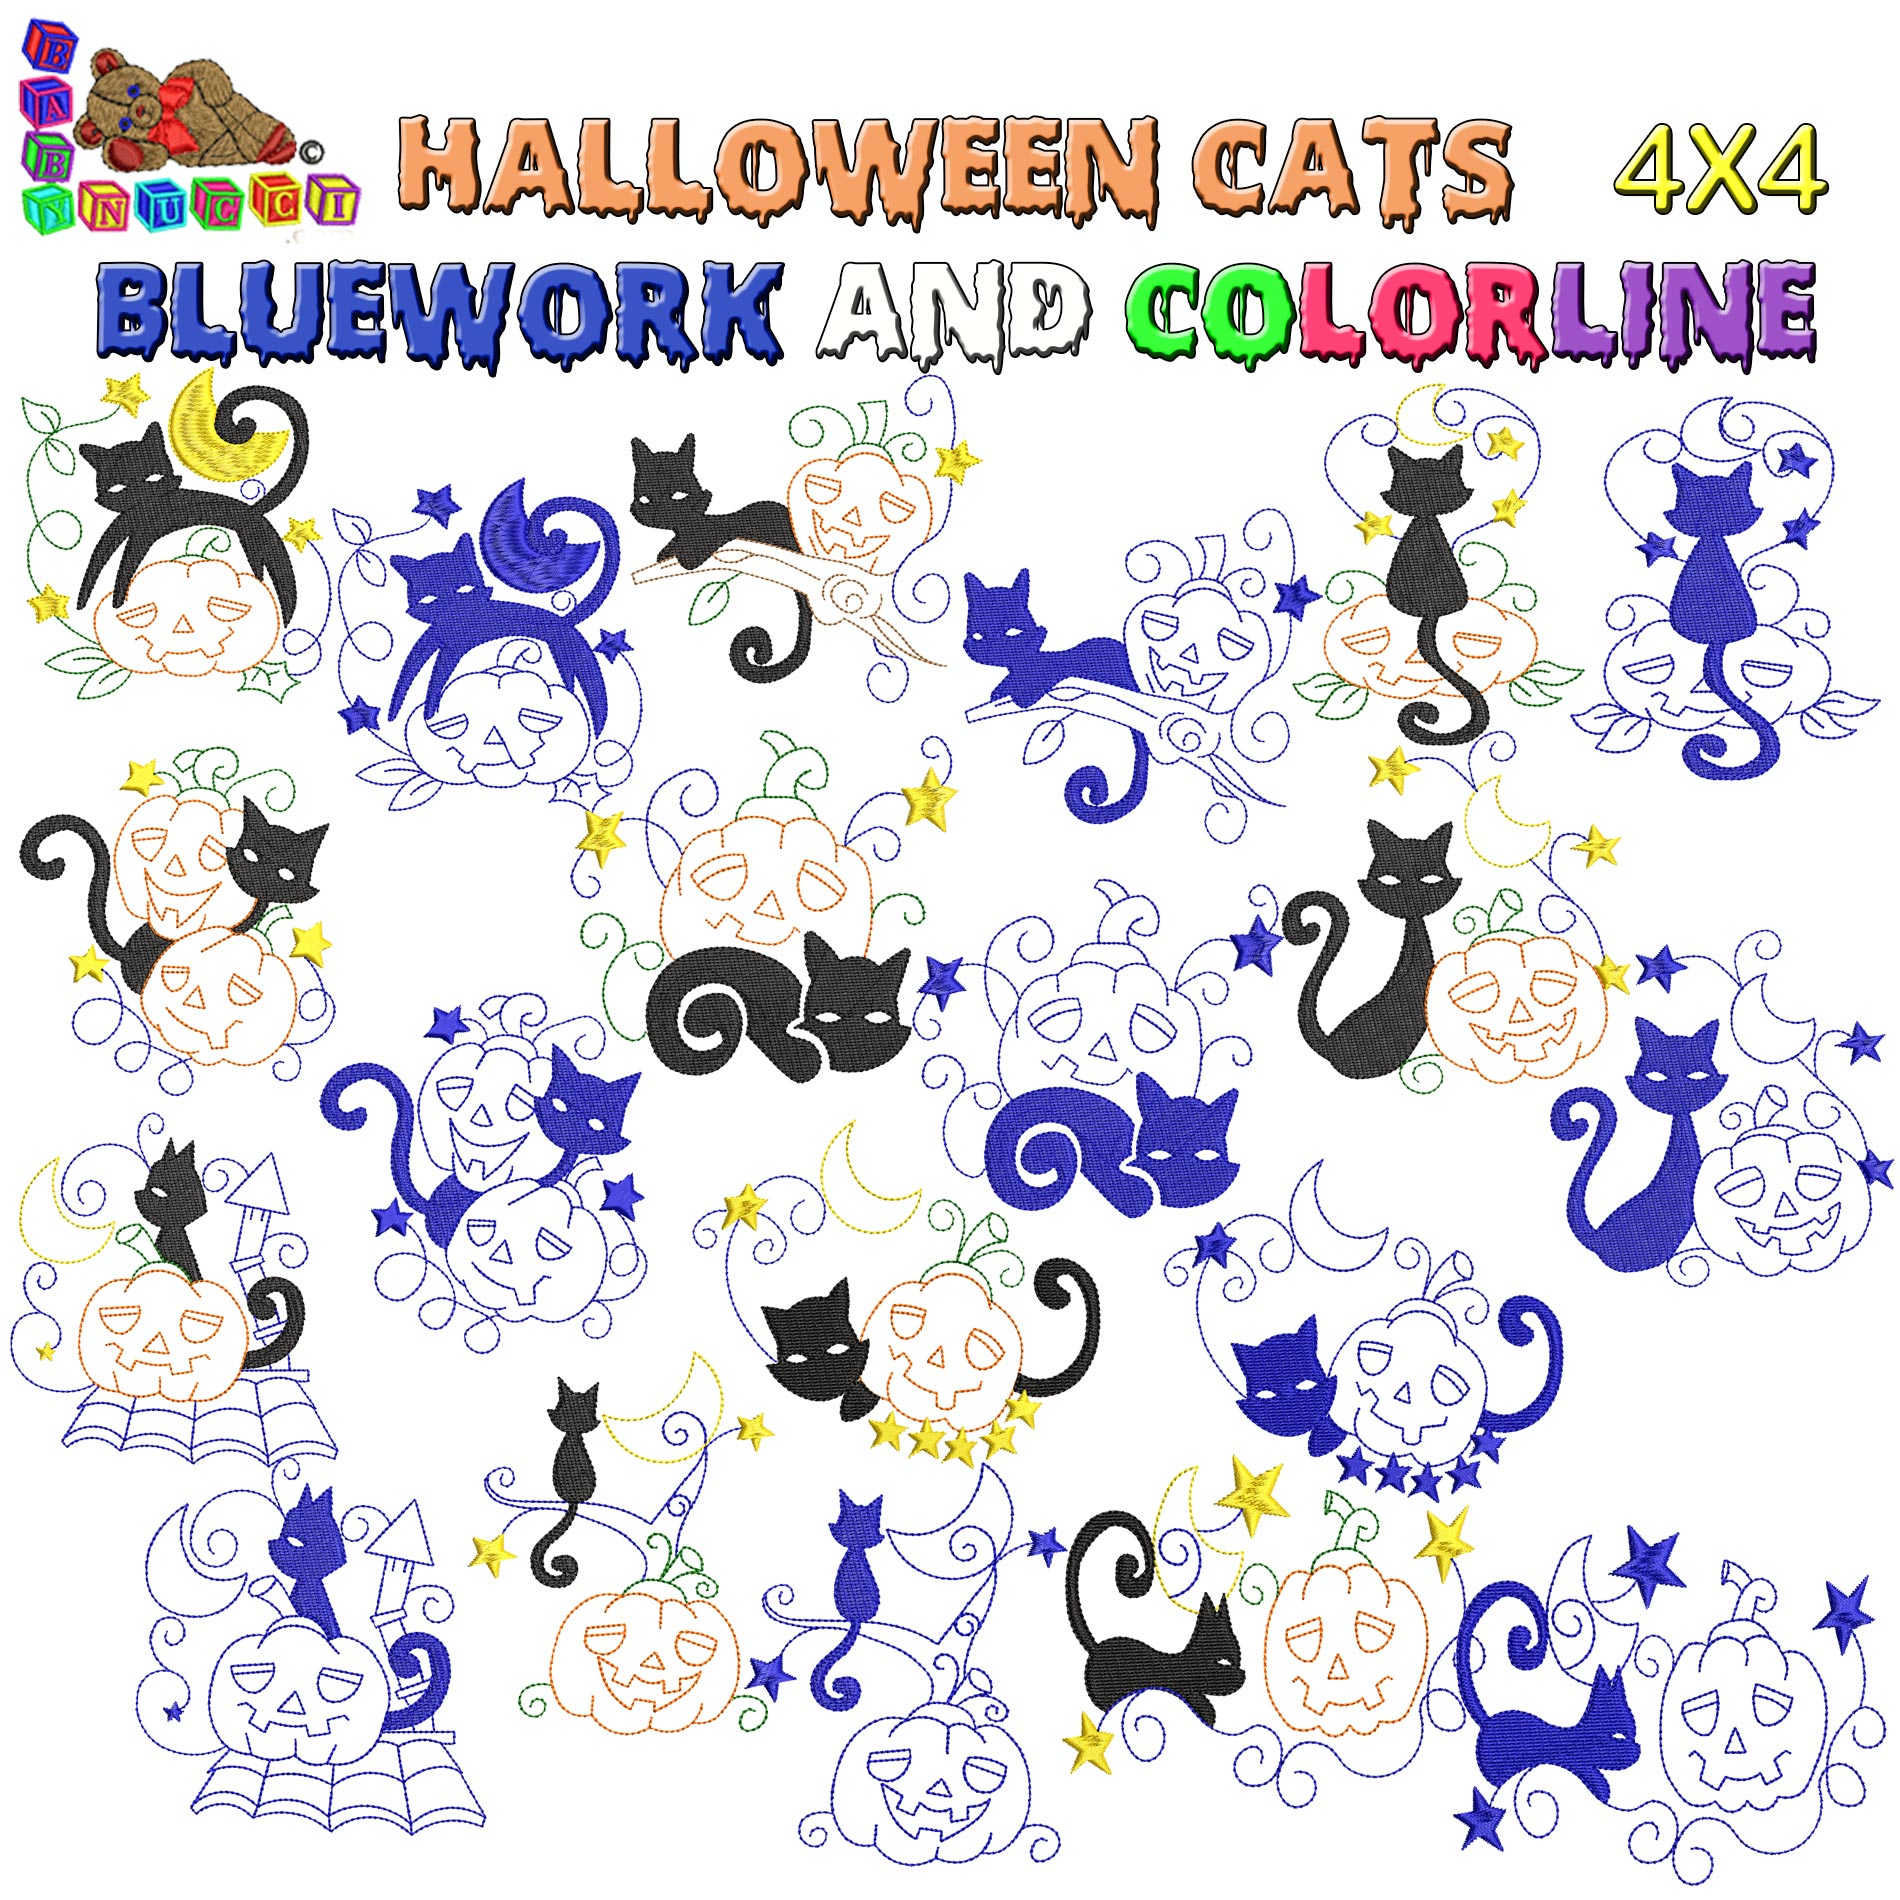 Halloween cats Bluework and Colorlines